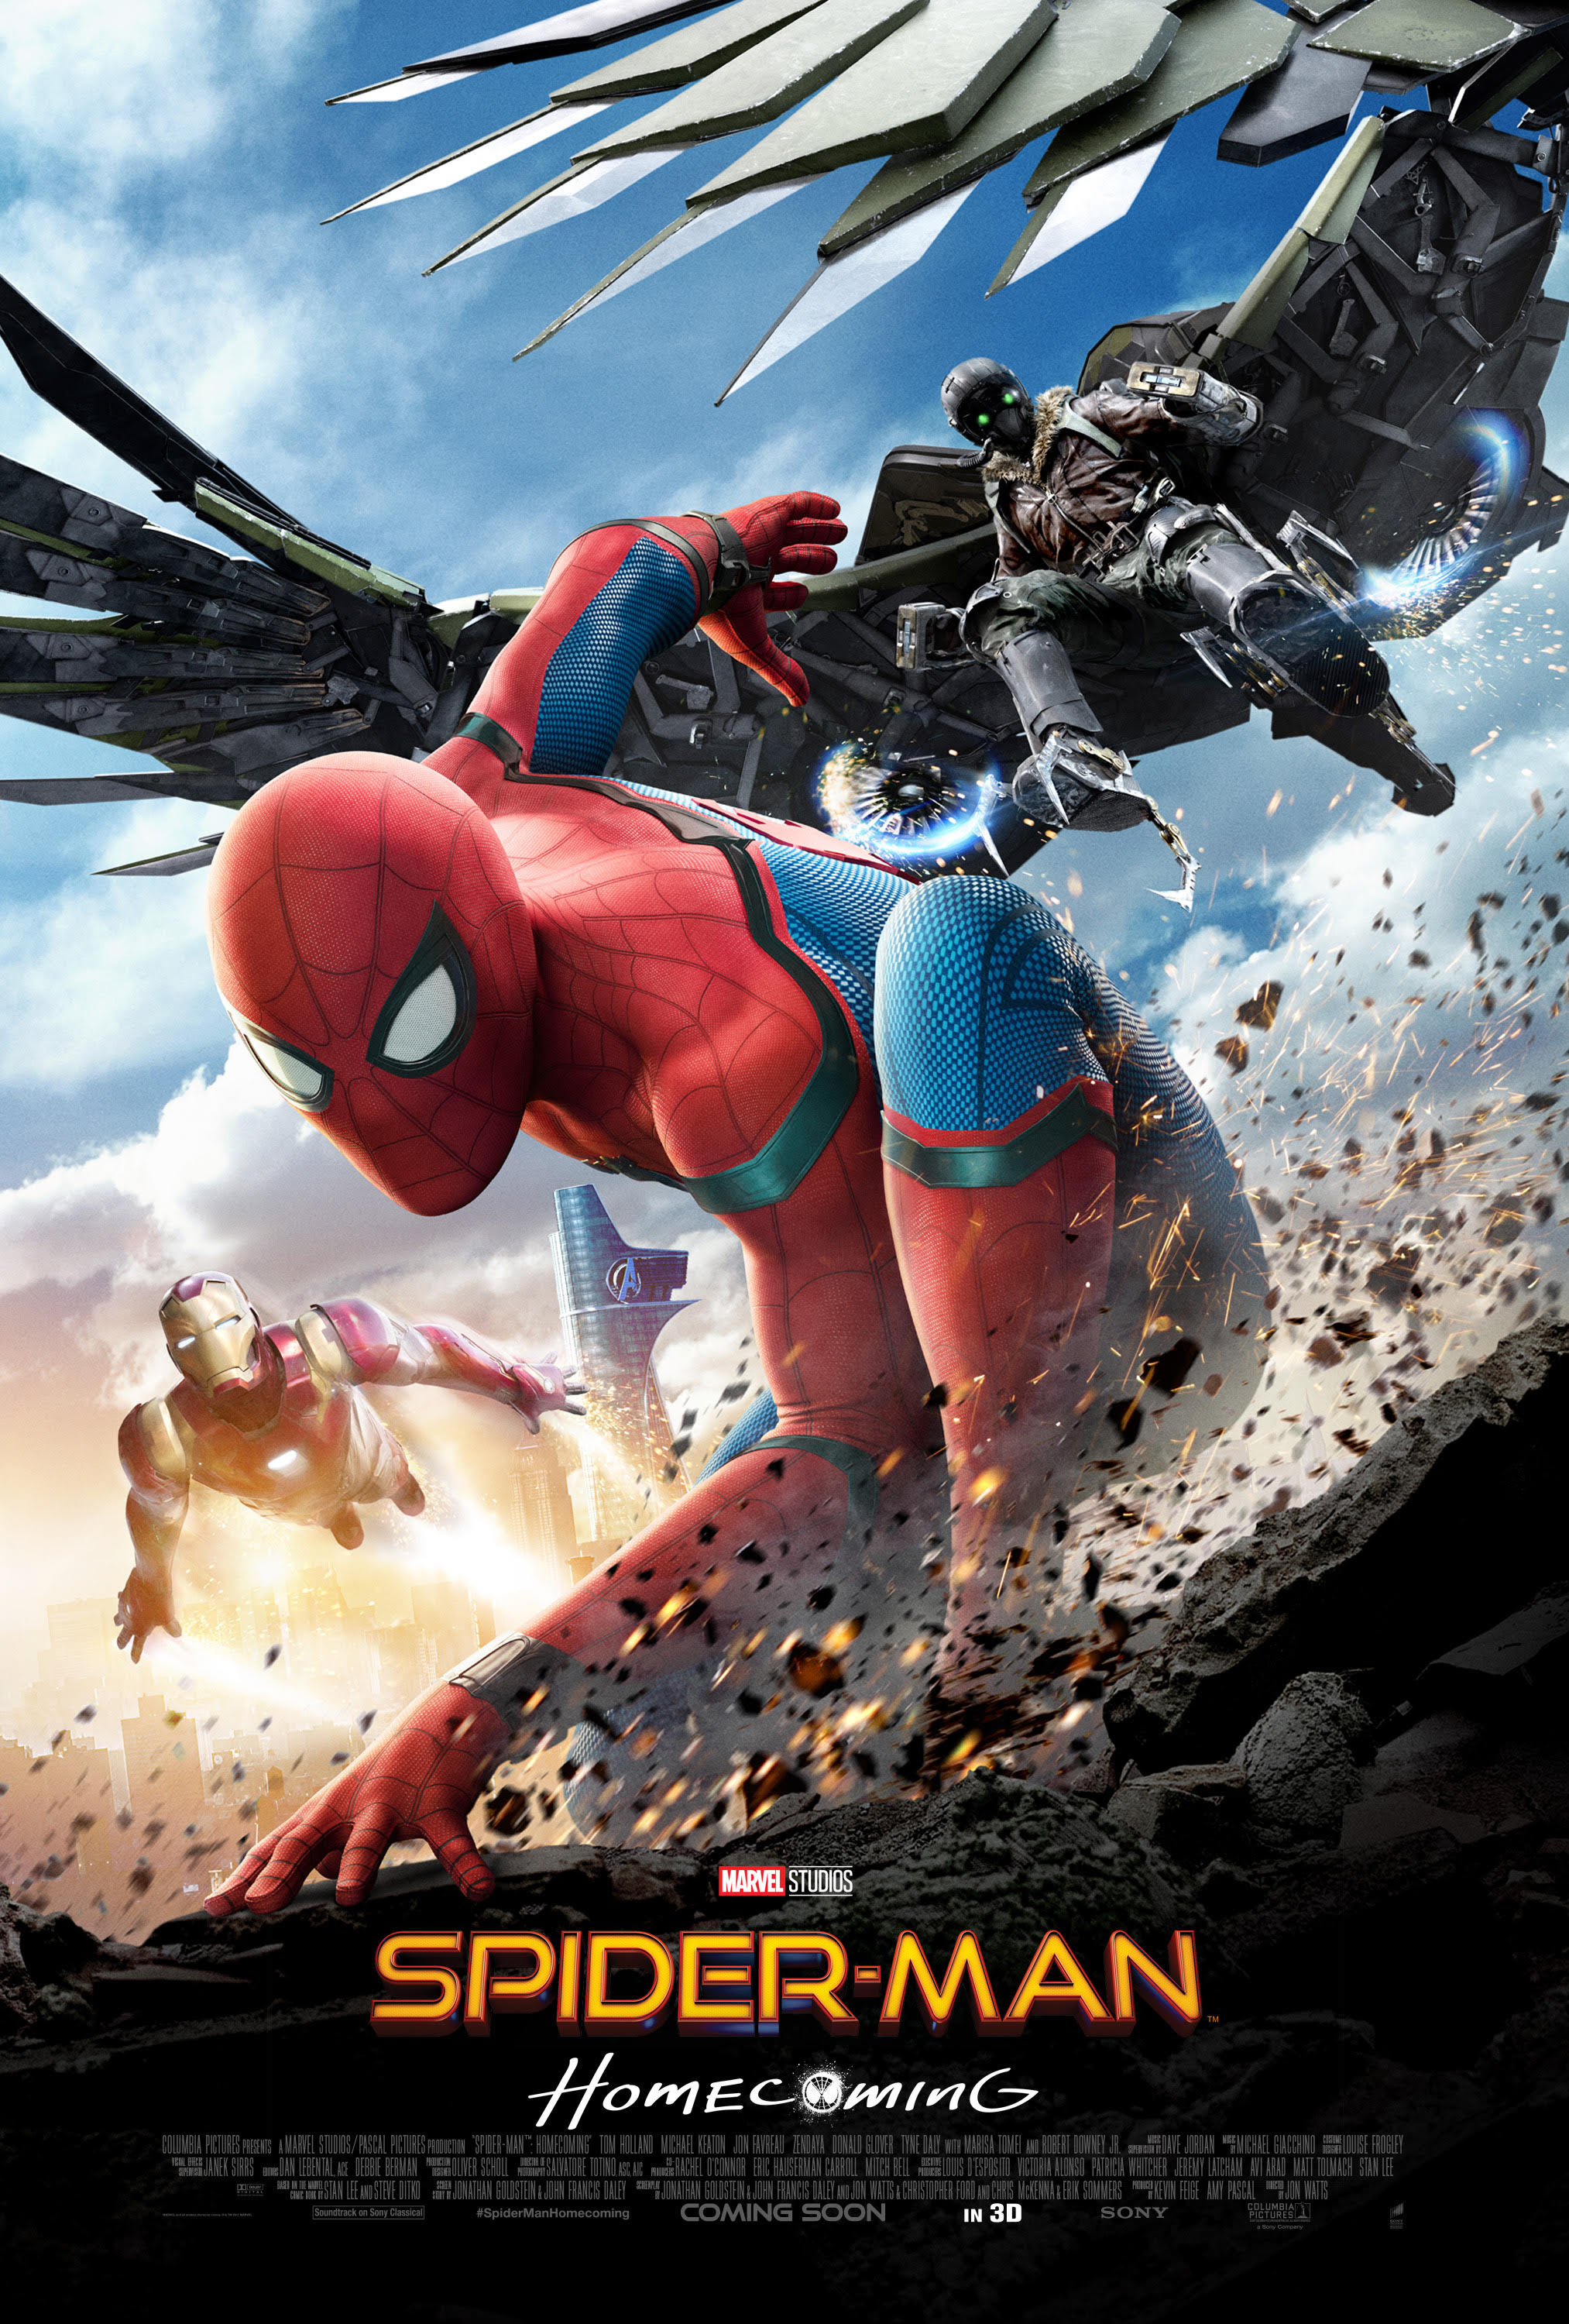 Spider-man-home-coming-poster-12.jpg